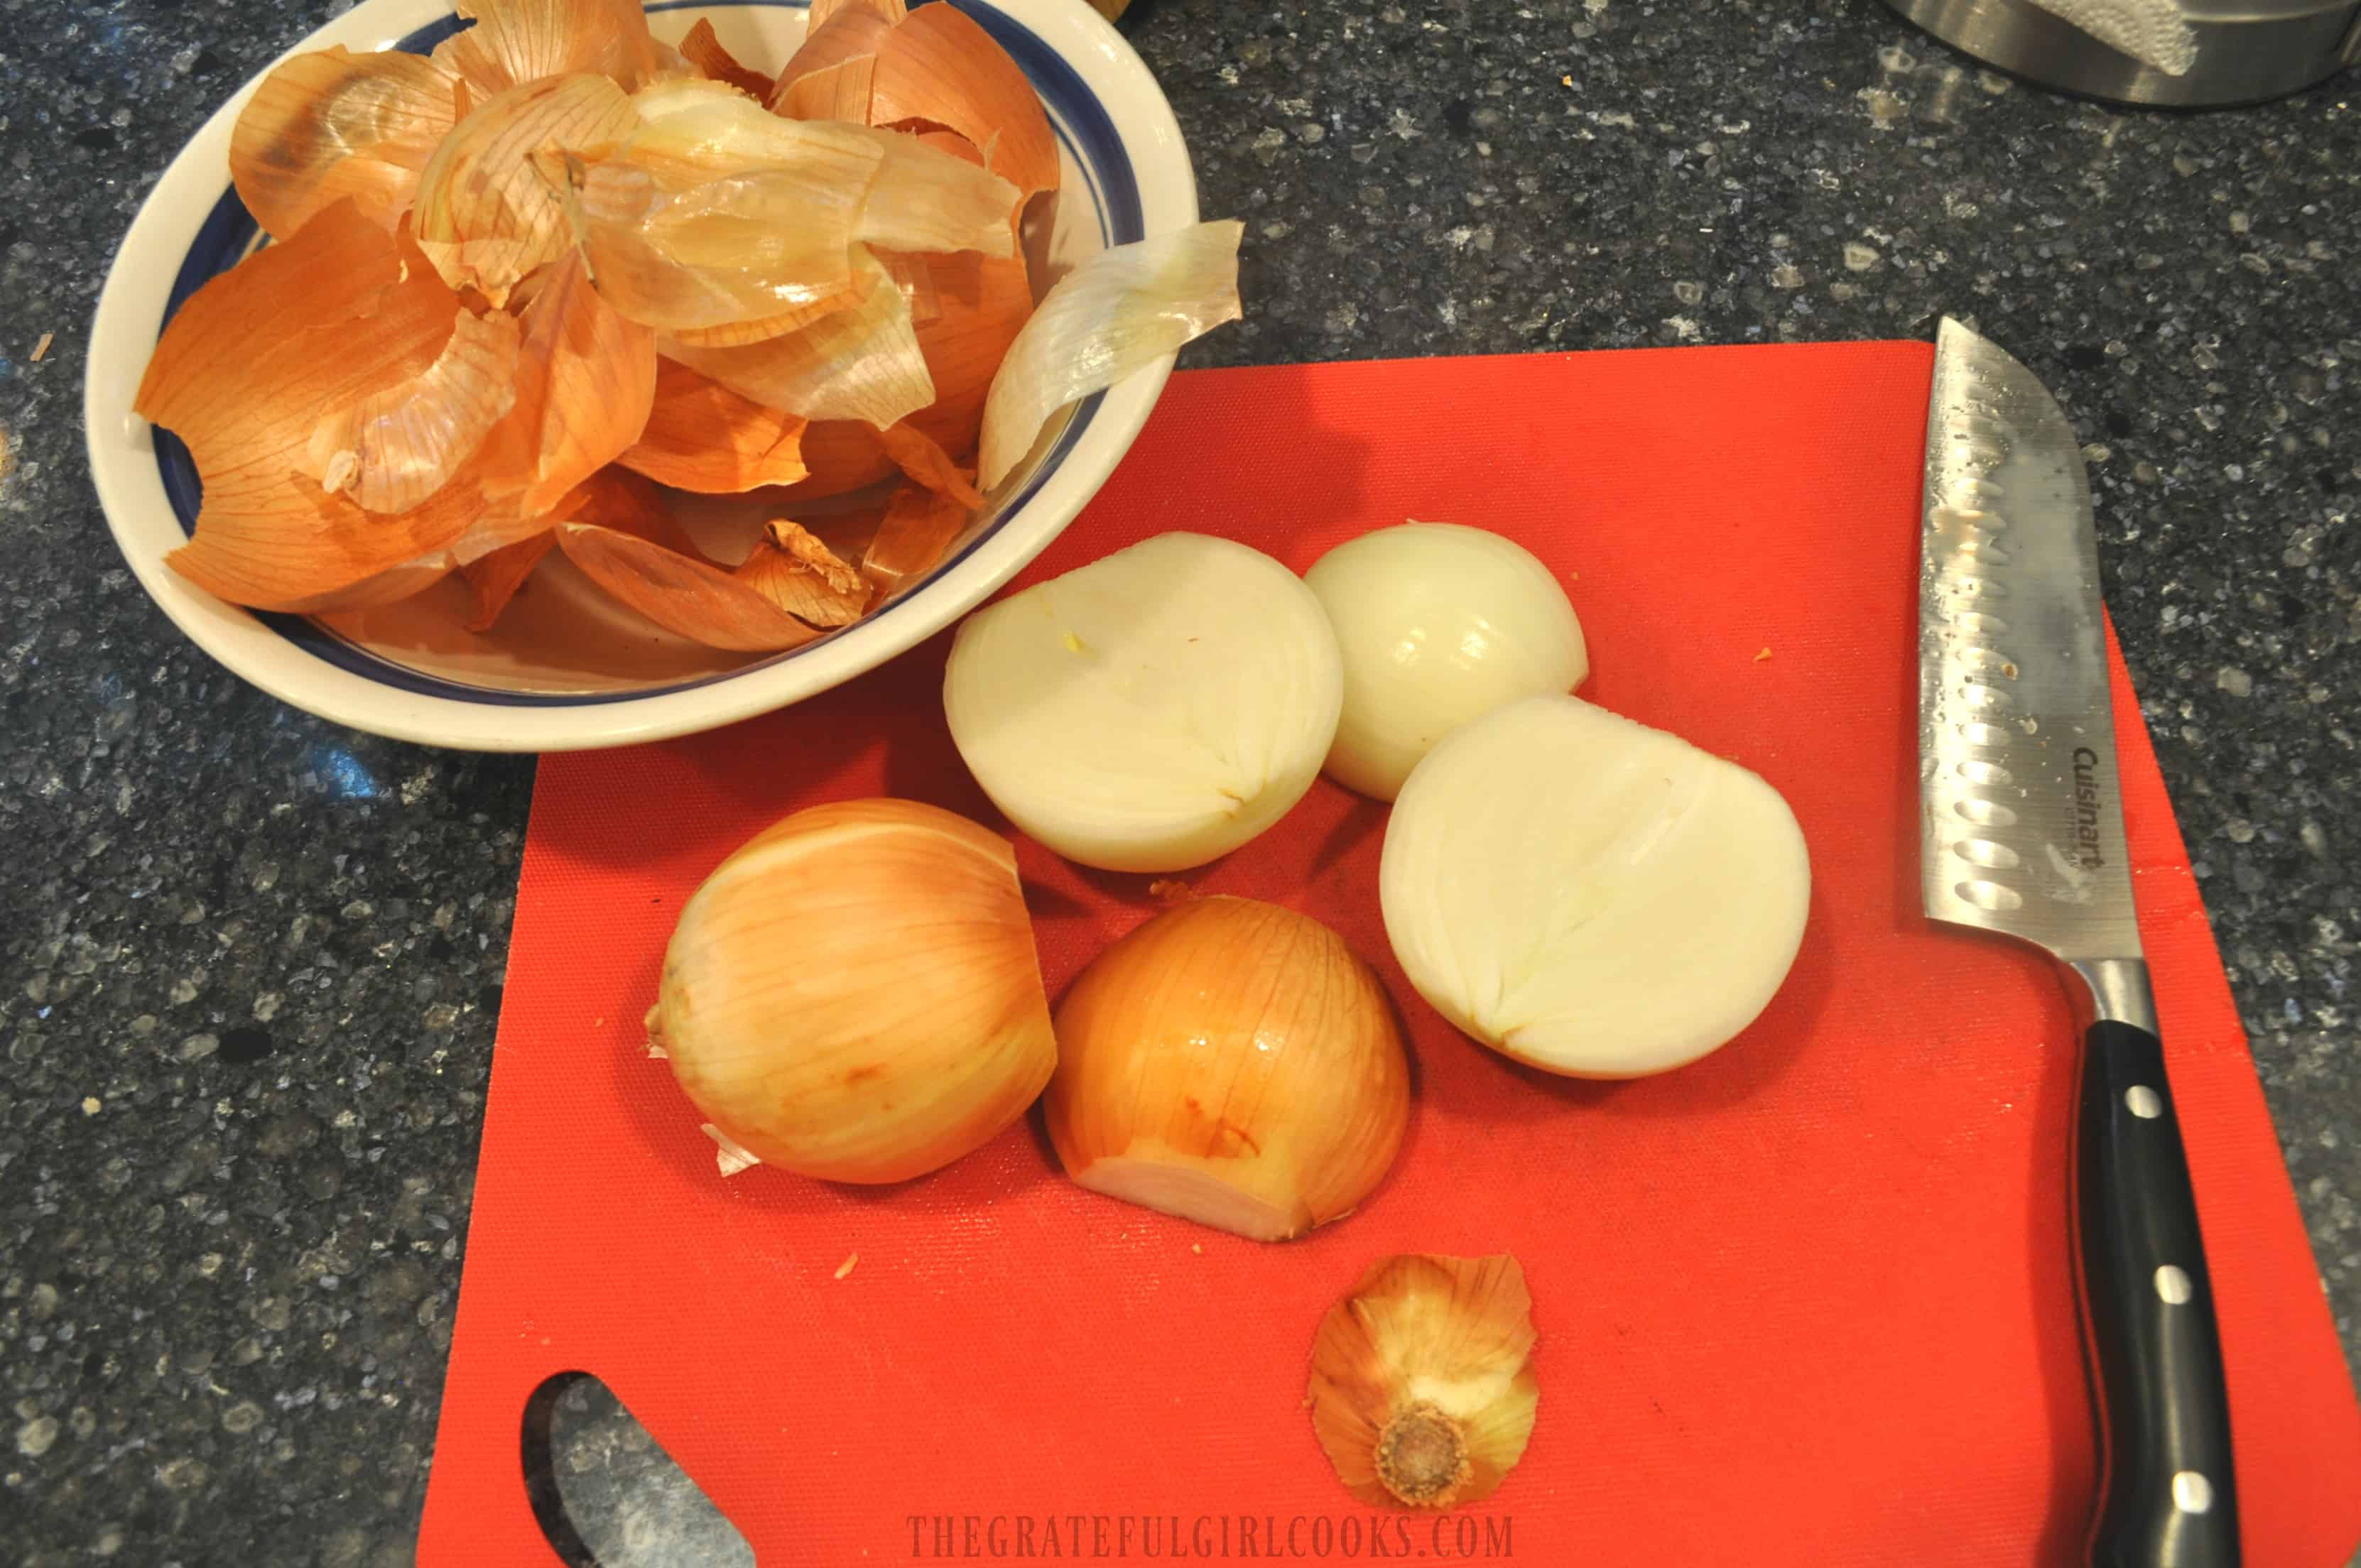 Weight Watchers French Onion Soup / The Grateful Girl Cooks!